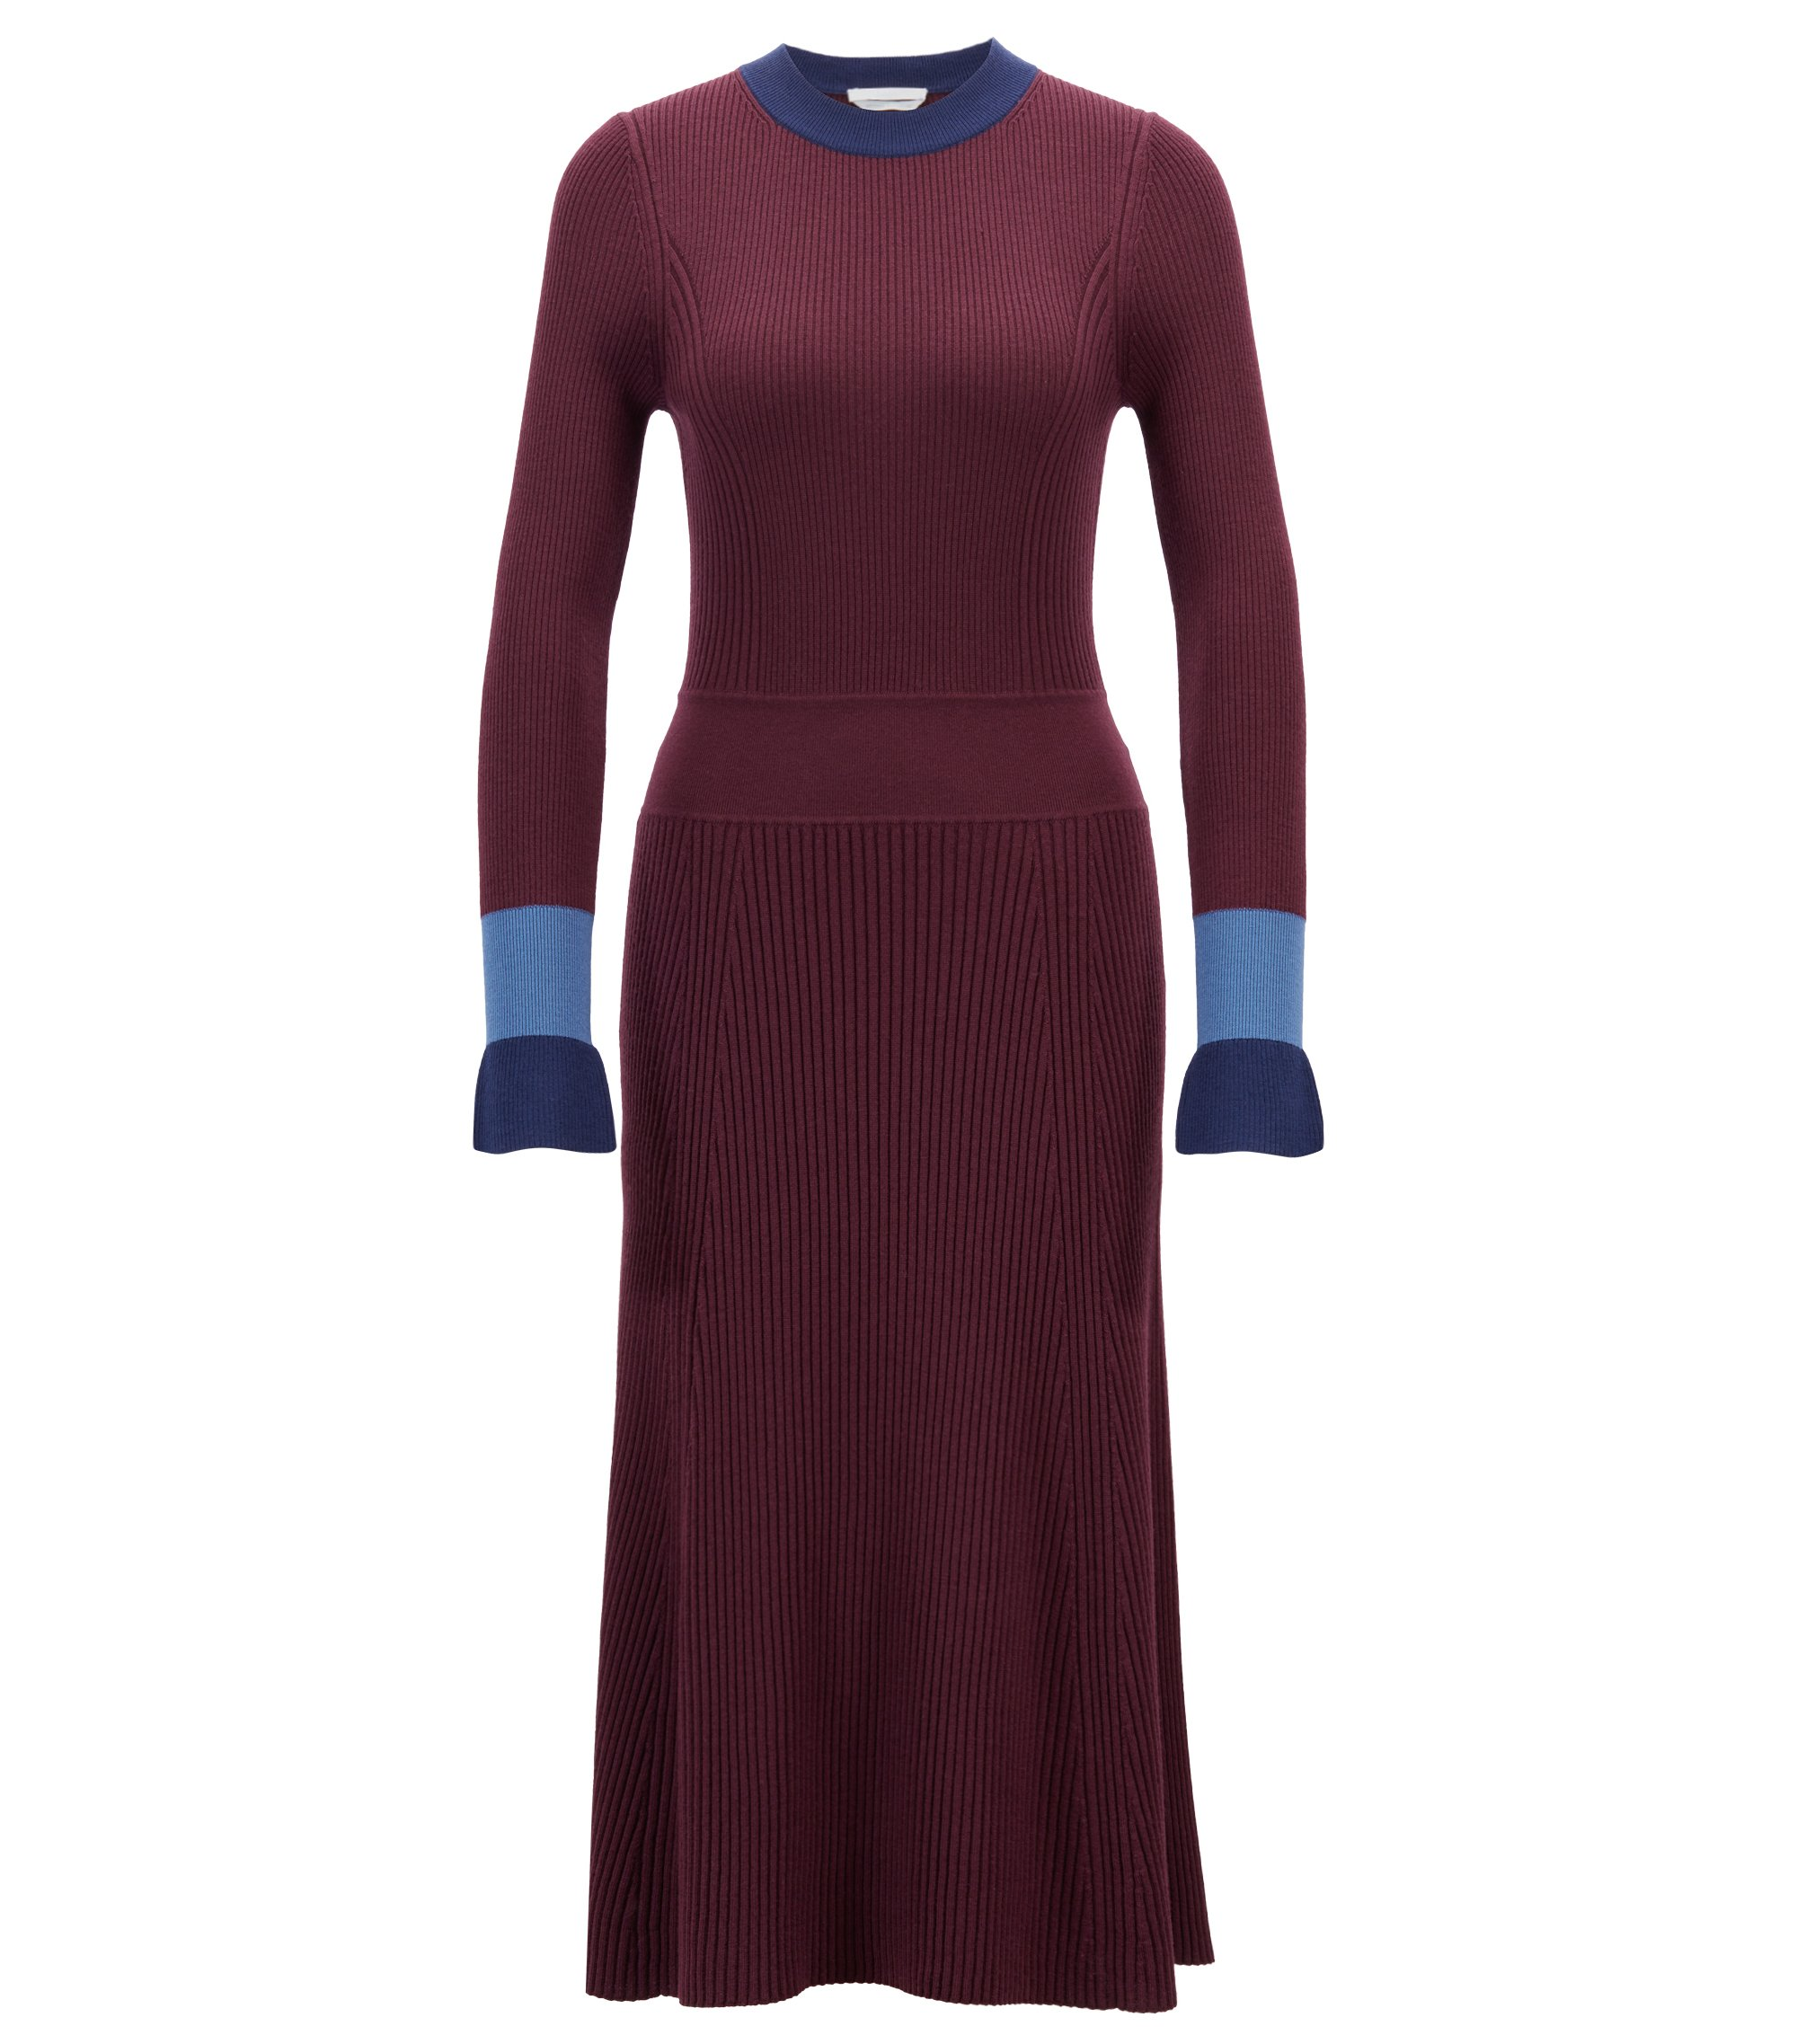 Knitted long-sleeved dress with colourblocking, Gemustert